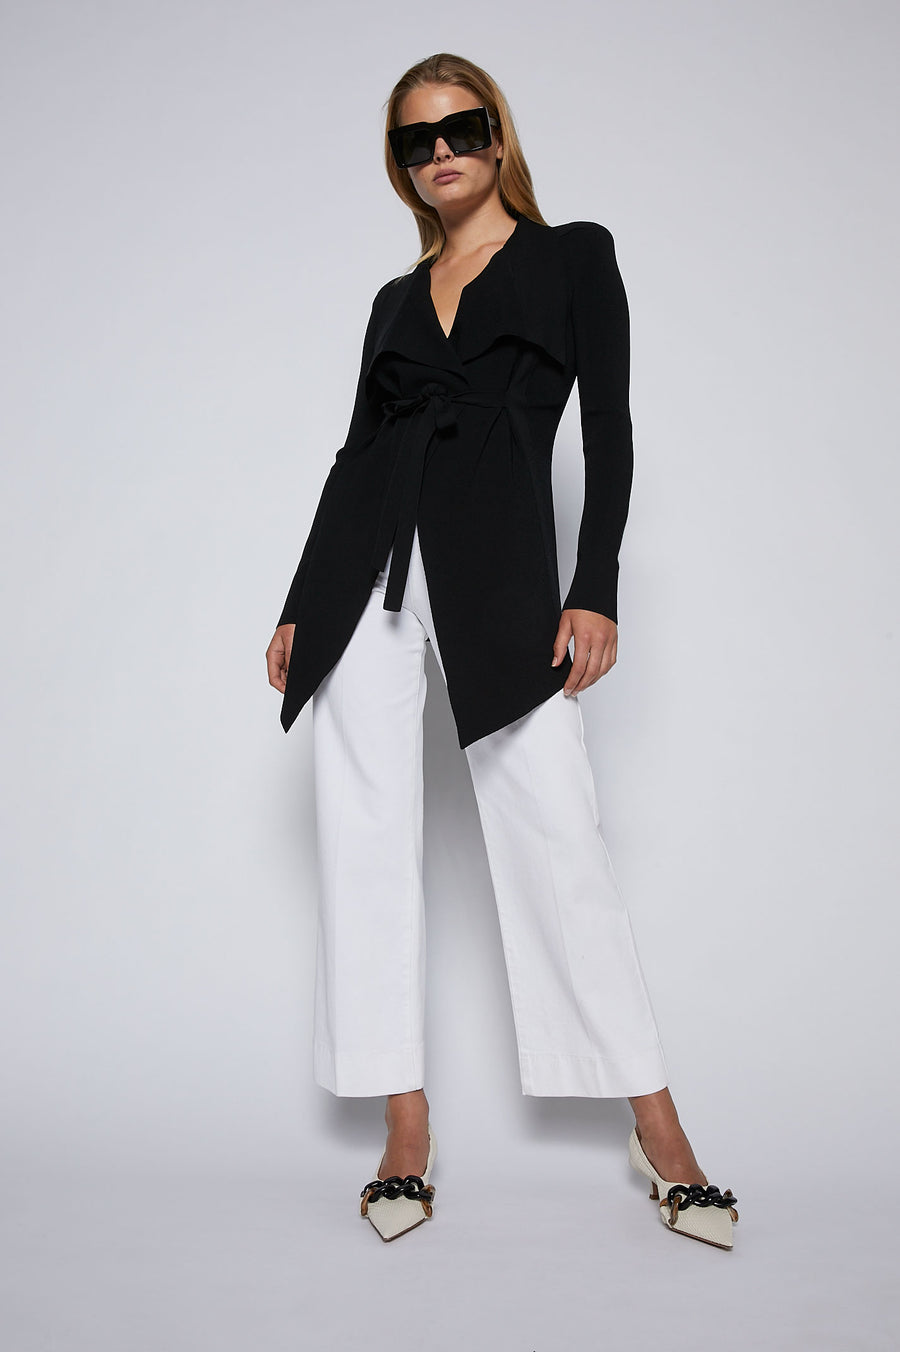 Crepe Knit Drape Front Jacket, tailored jacket, pointed collar, fitted bodice, shoulder pads, flap pocket detail, Color Black